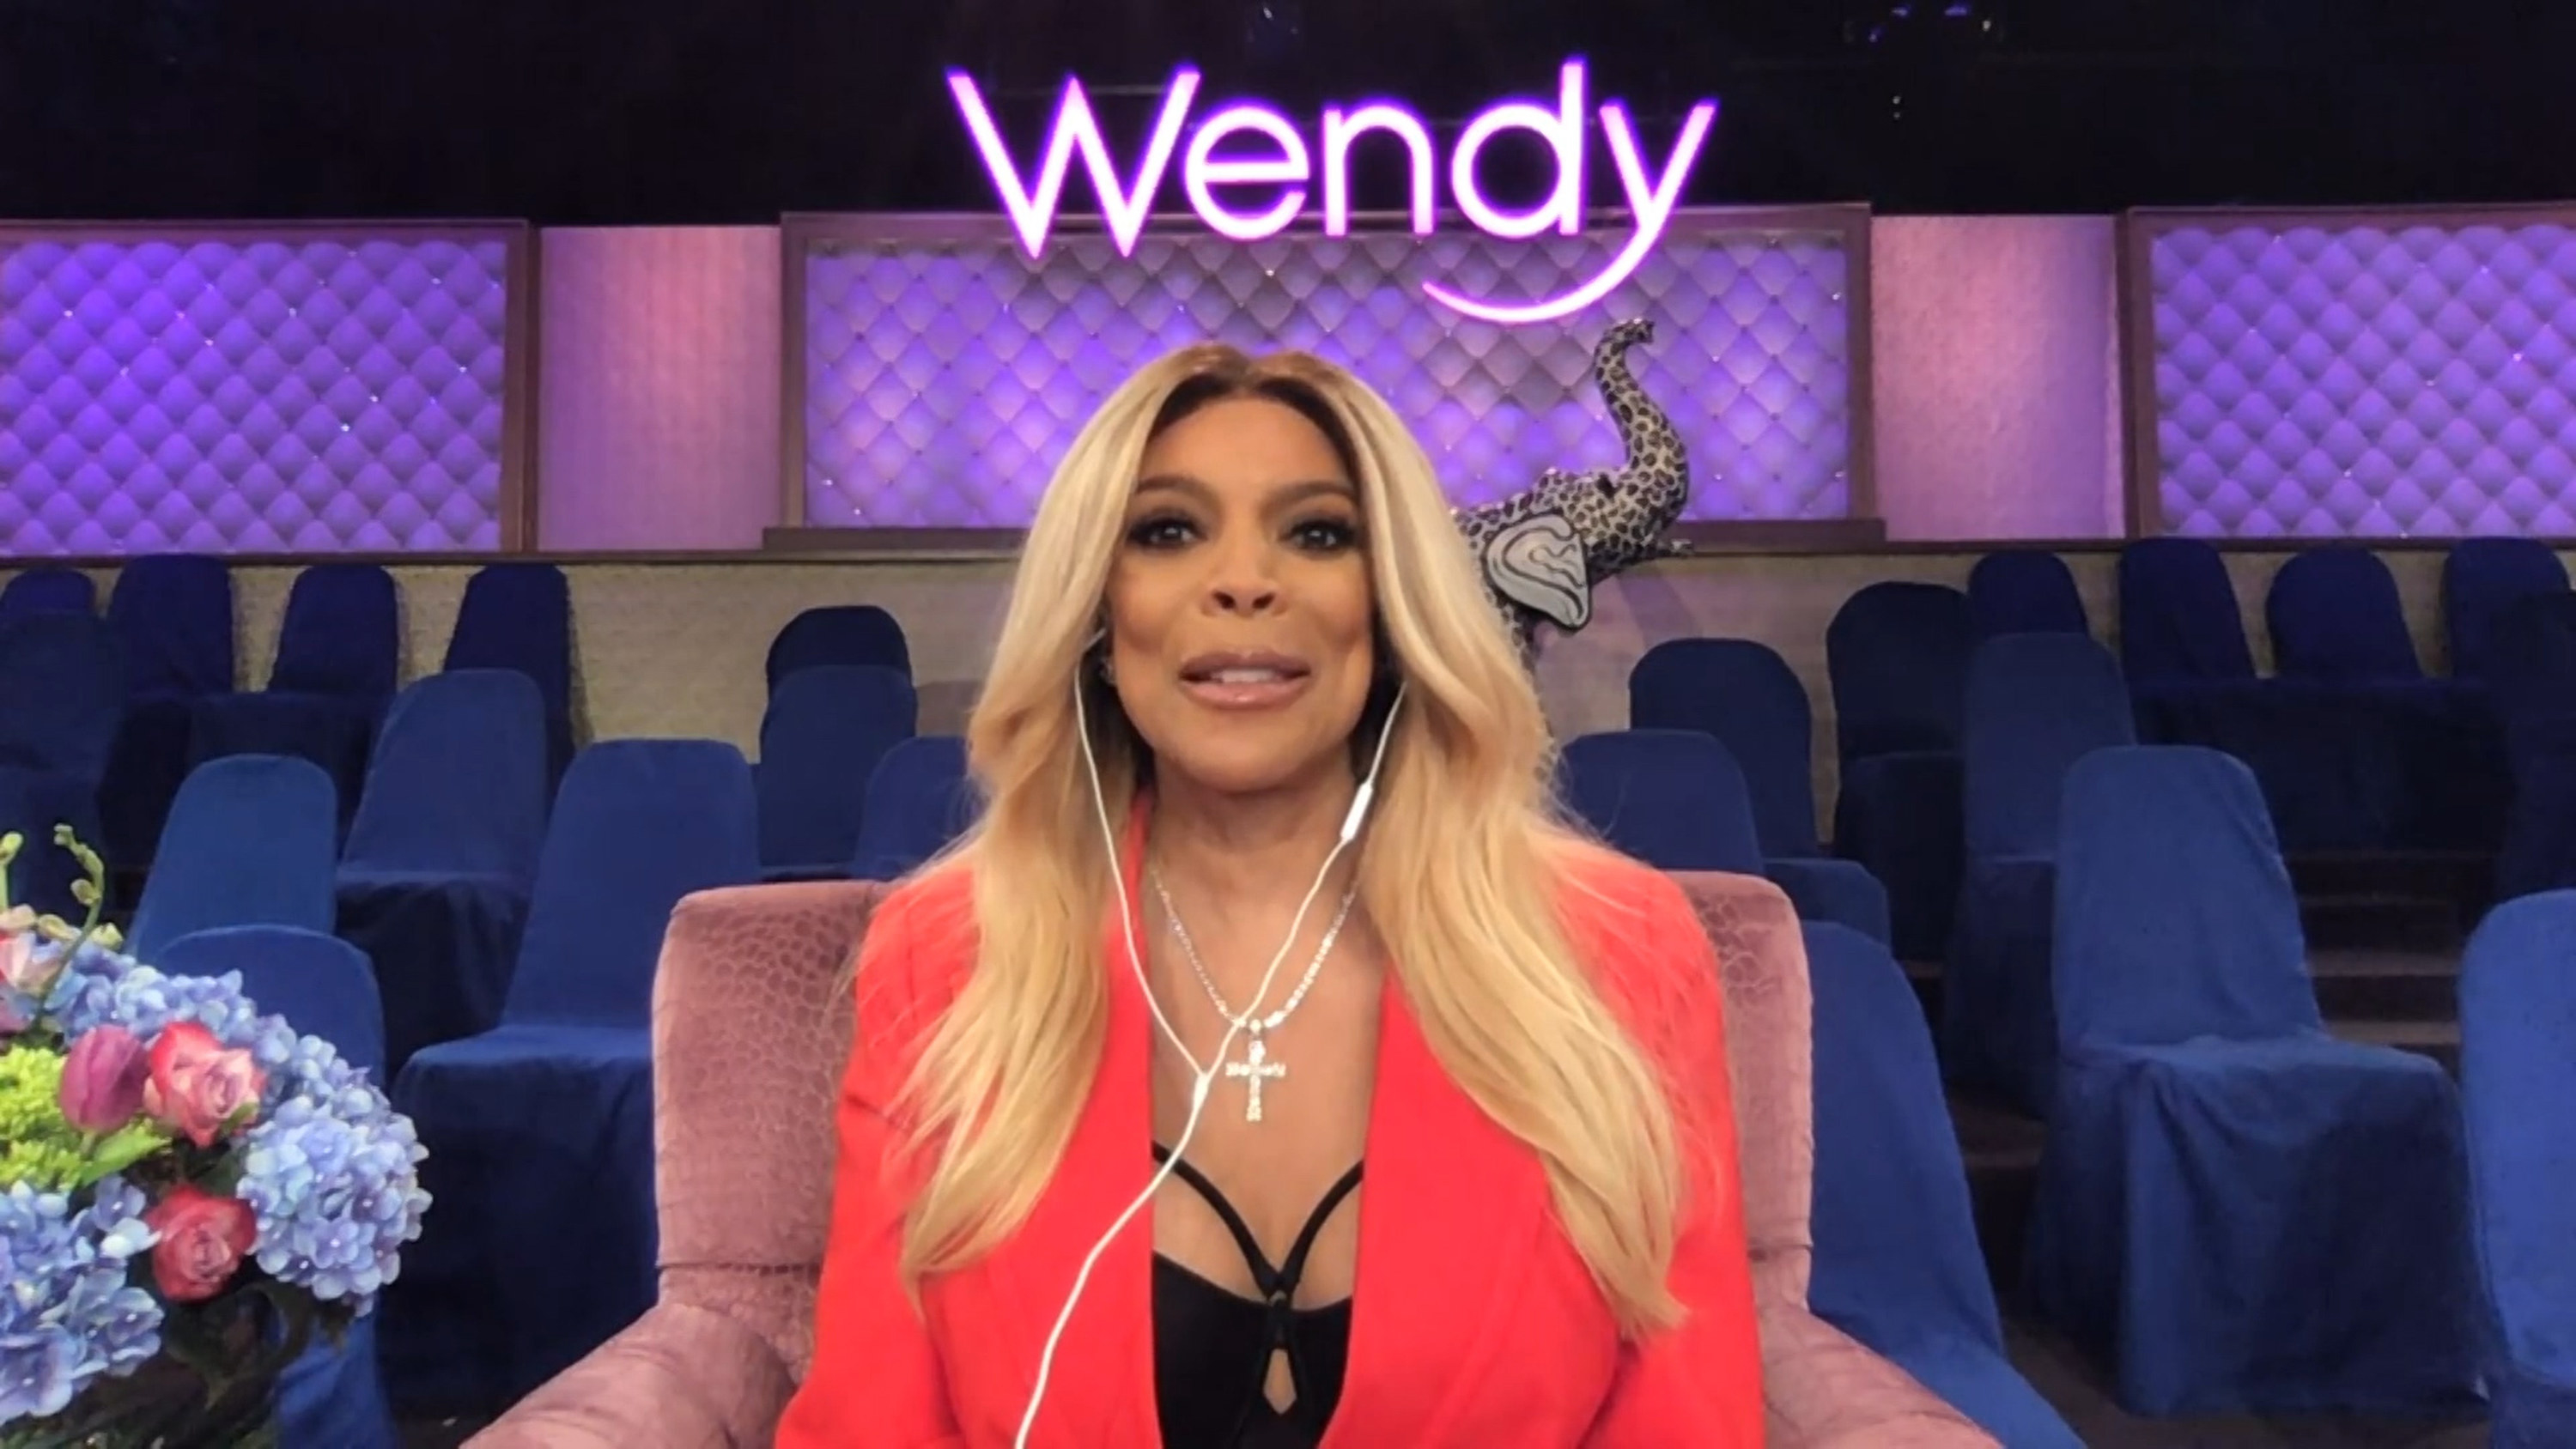 Wendy Williams in a bright orange pink jacket sitting alone in the audience of her show with headphones on